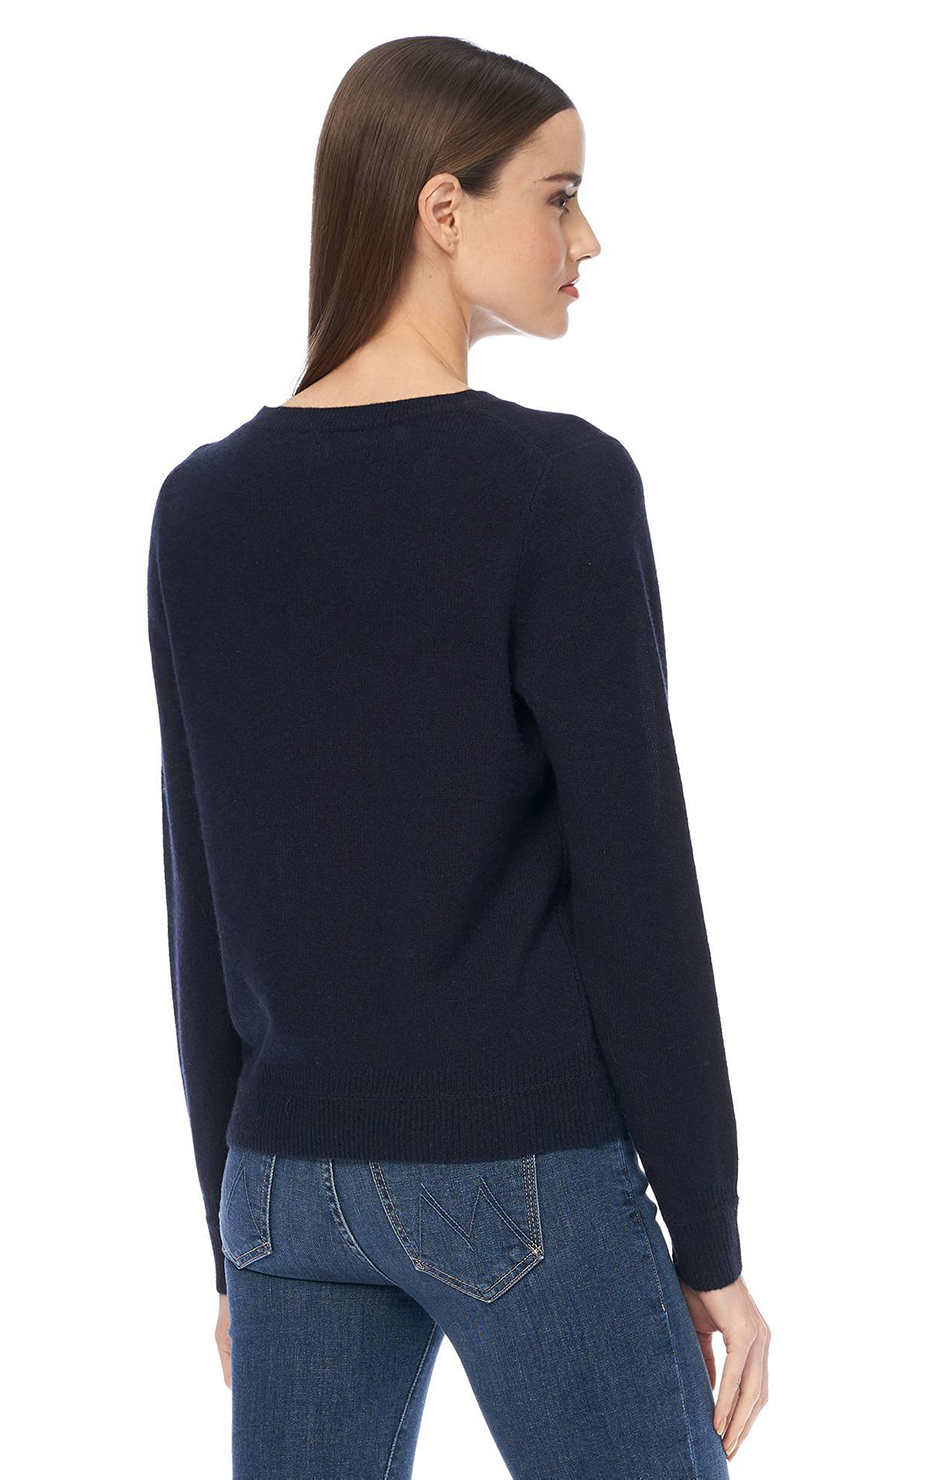 Leila Cashmere Pullover - Navy